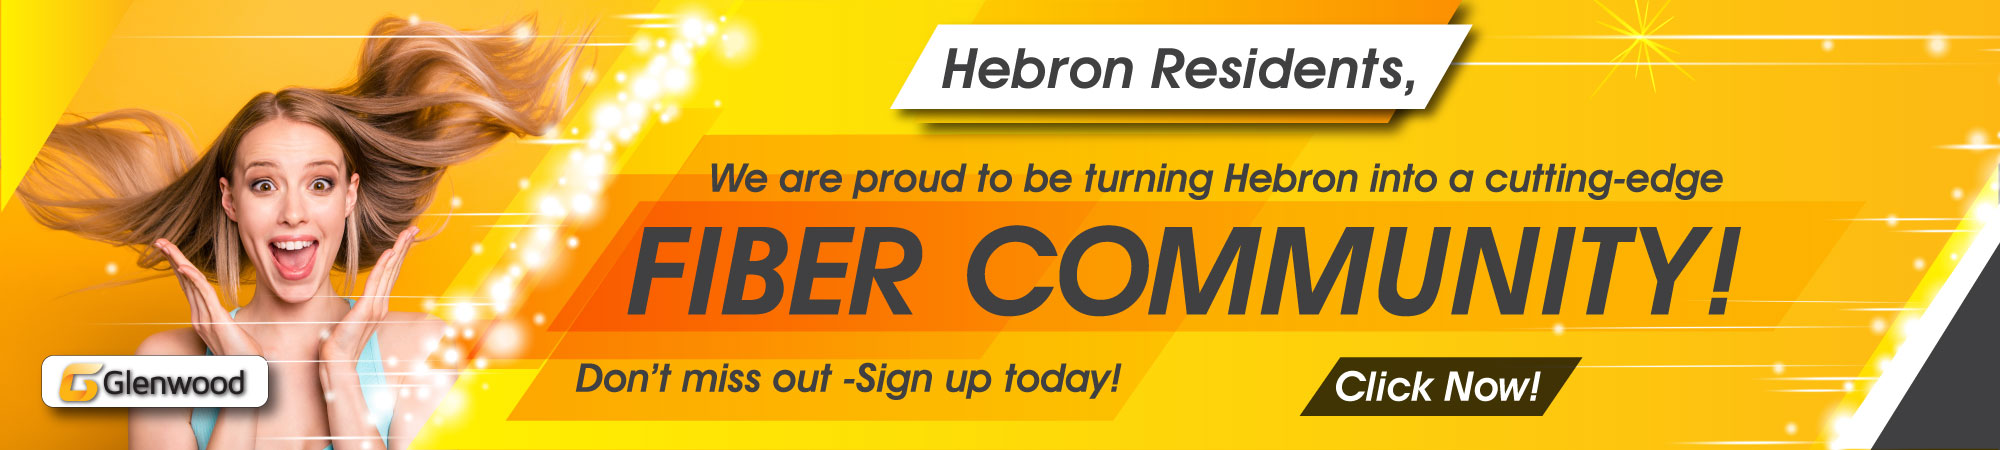 Hebron - A Fiber Community